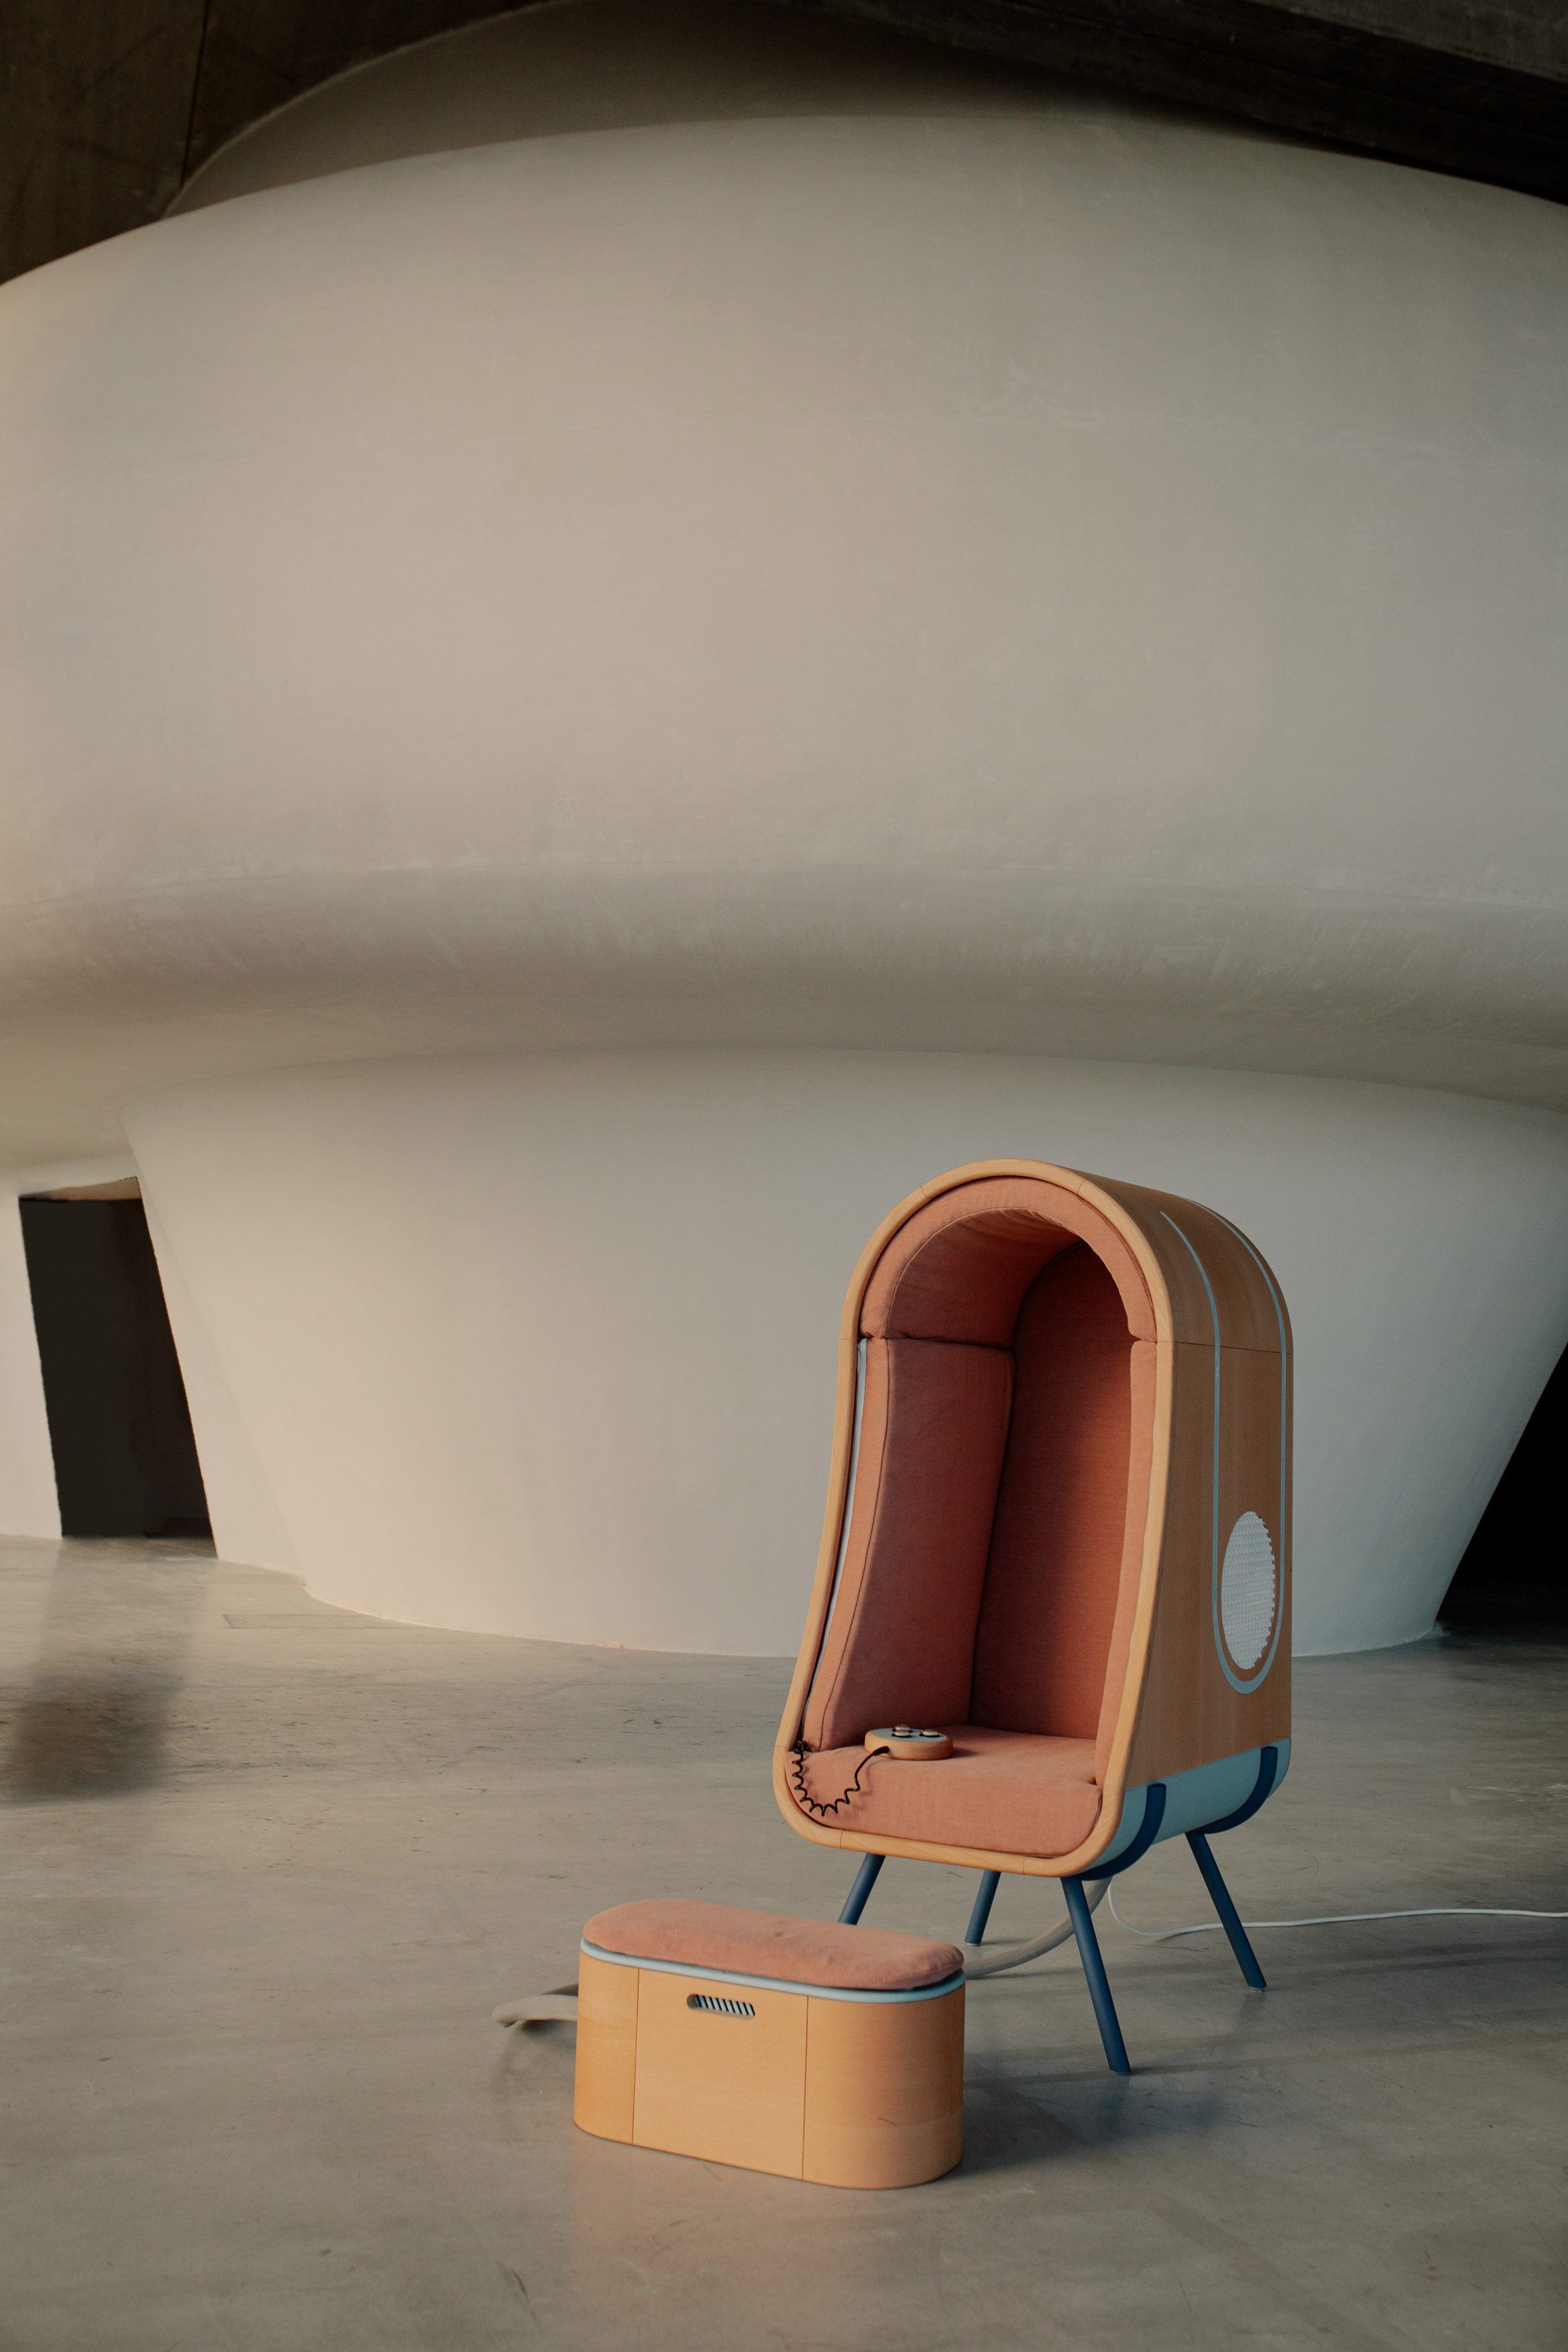 Oto hugging chair and footrest for people with autism